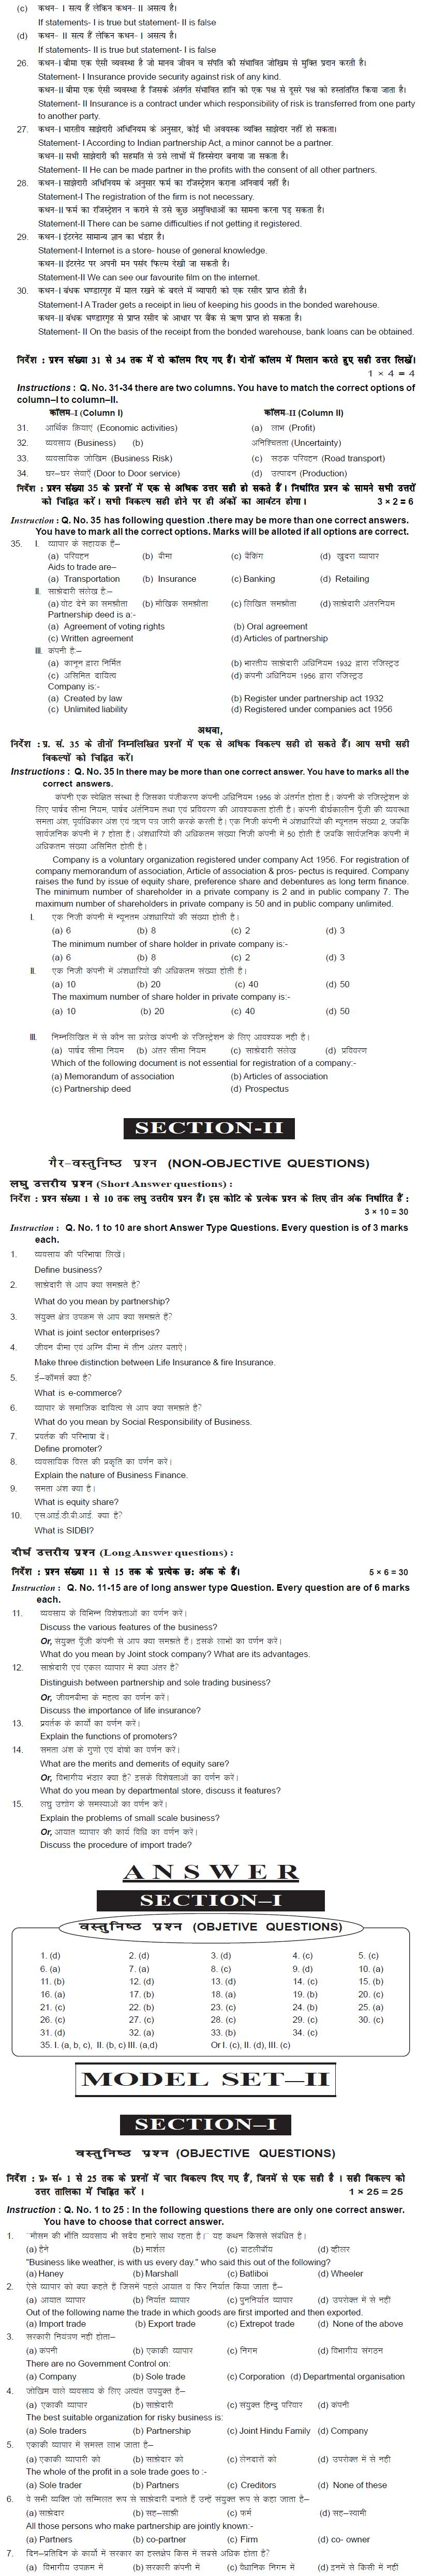 Bihar Board Class XI Commerce Model Question Papers - Business Study